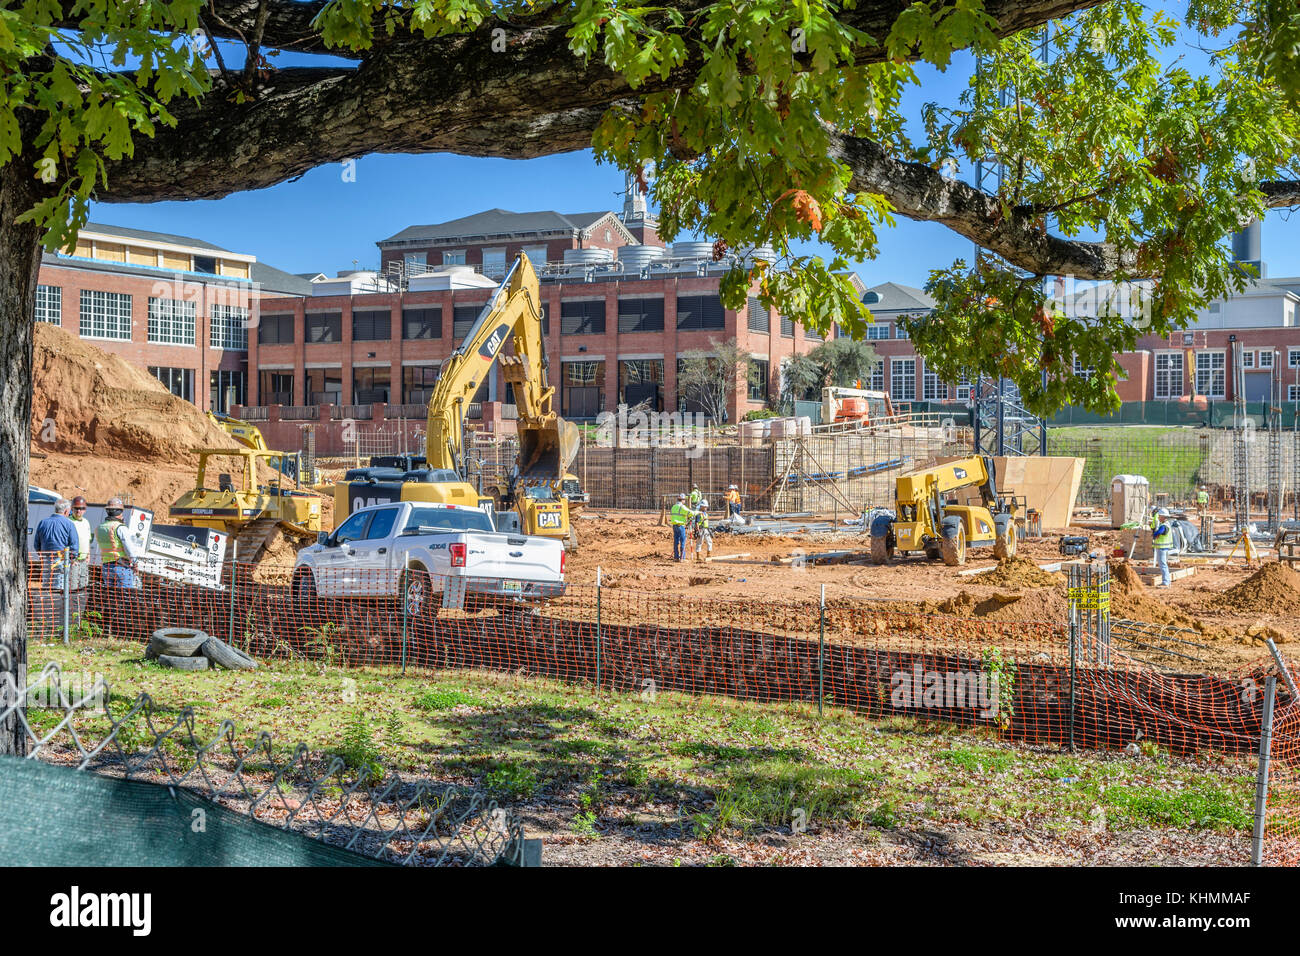 Construction work on the Auburn University campus expansion, Auburn Alabama, USA. - Stock Image